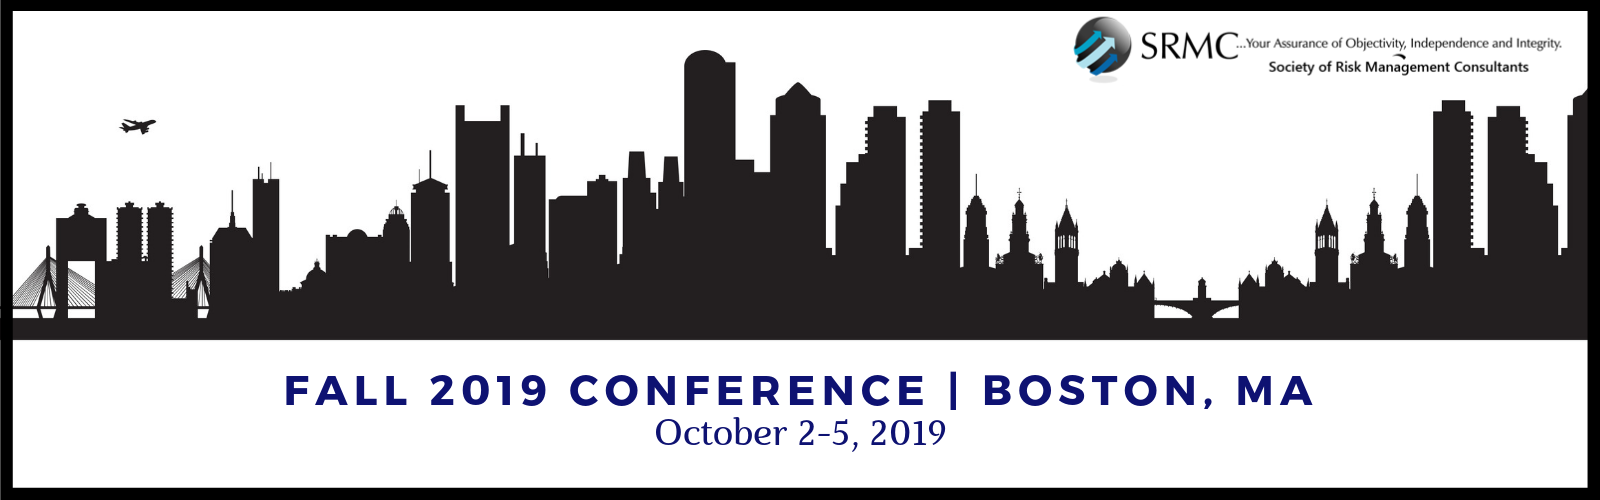 SRMC Conference Fall 2019